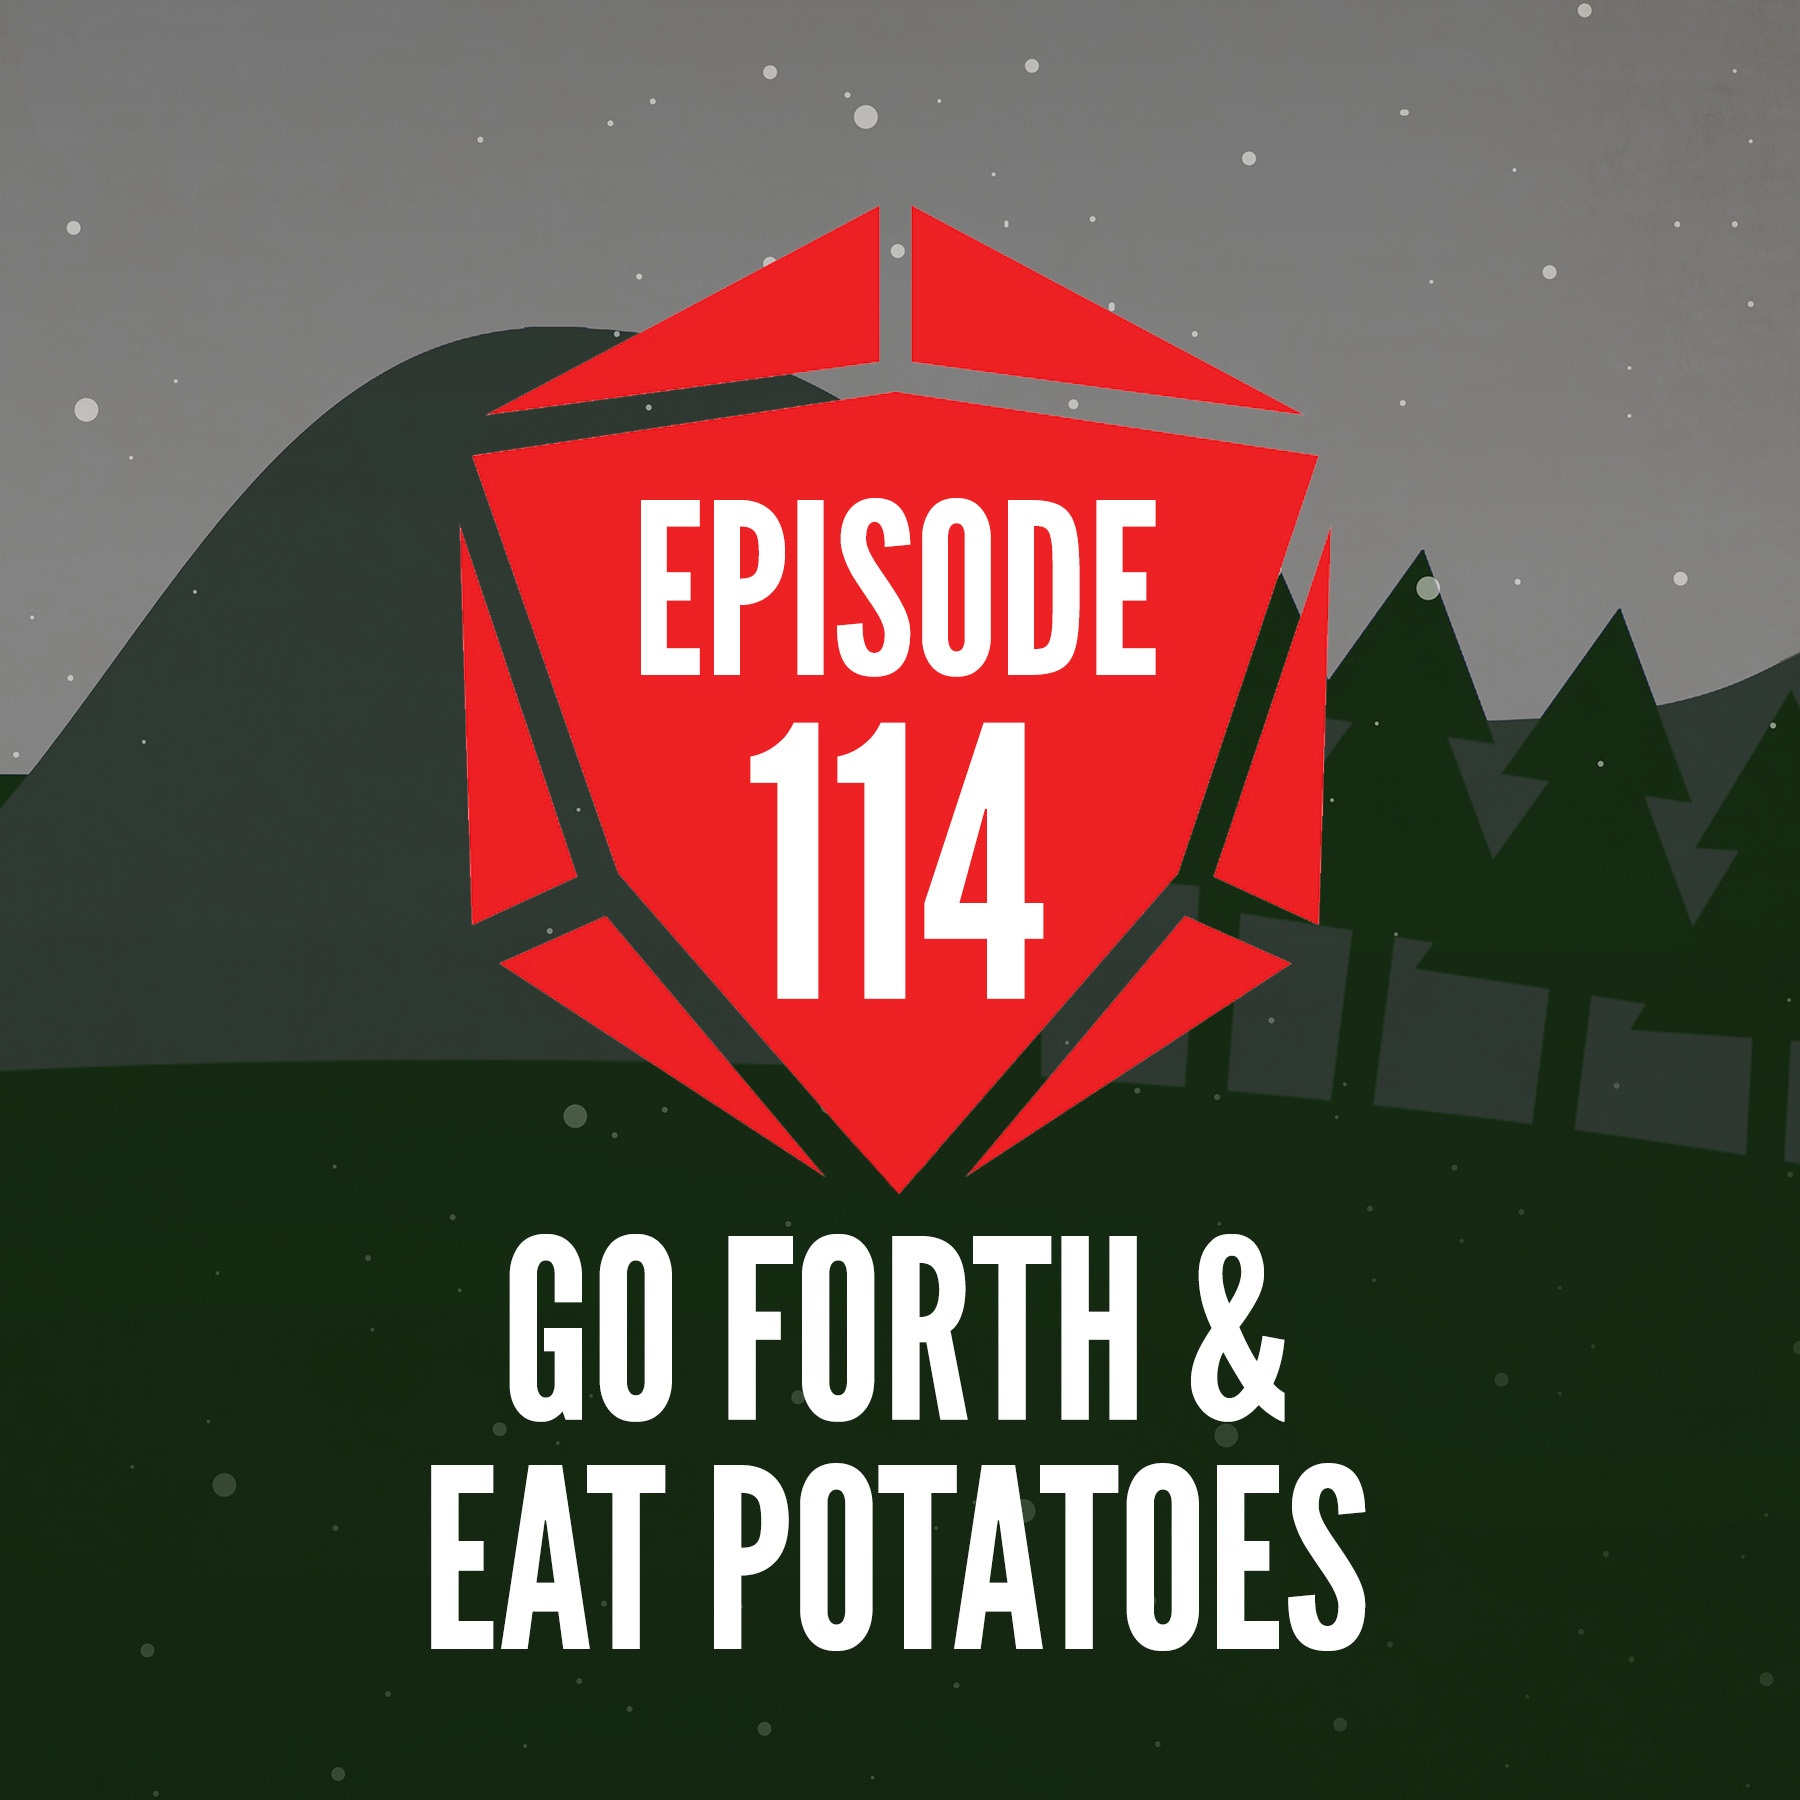 Episode 114: Go Forth & Eat Potatoes